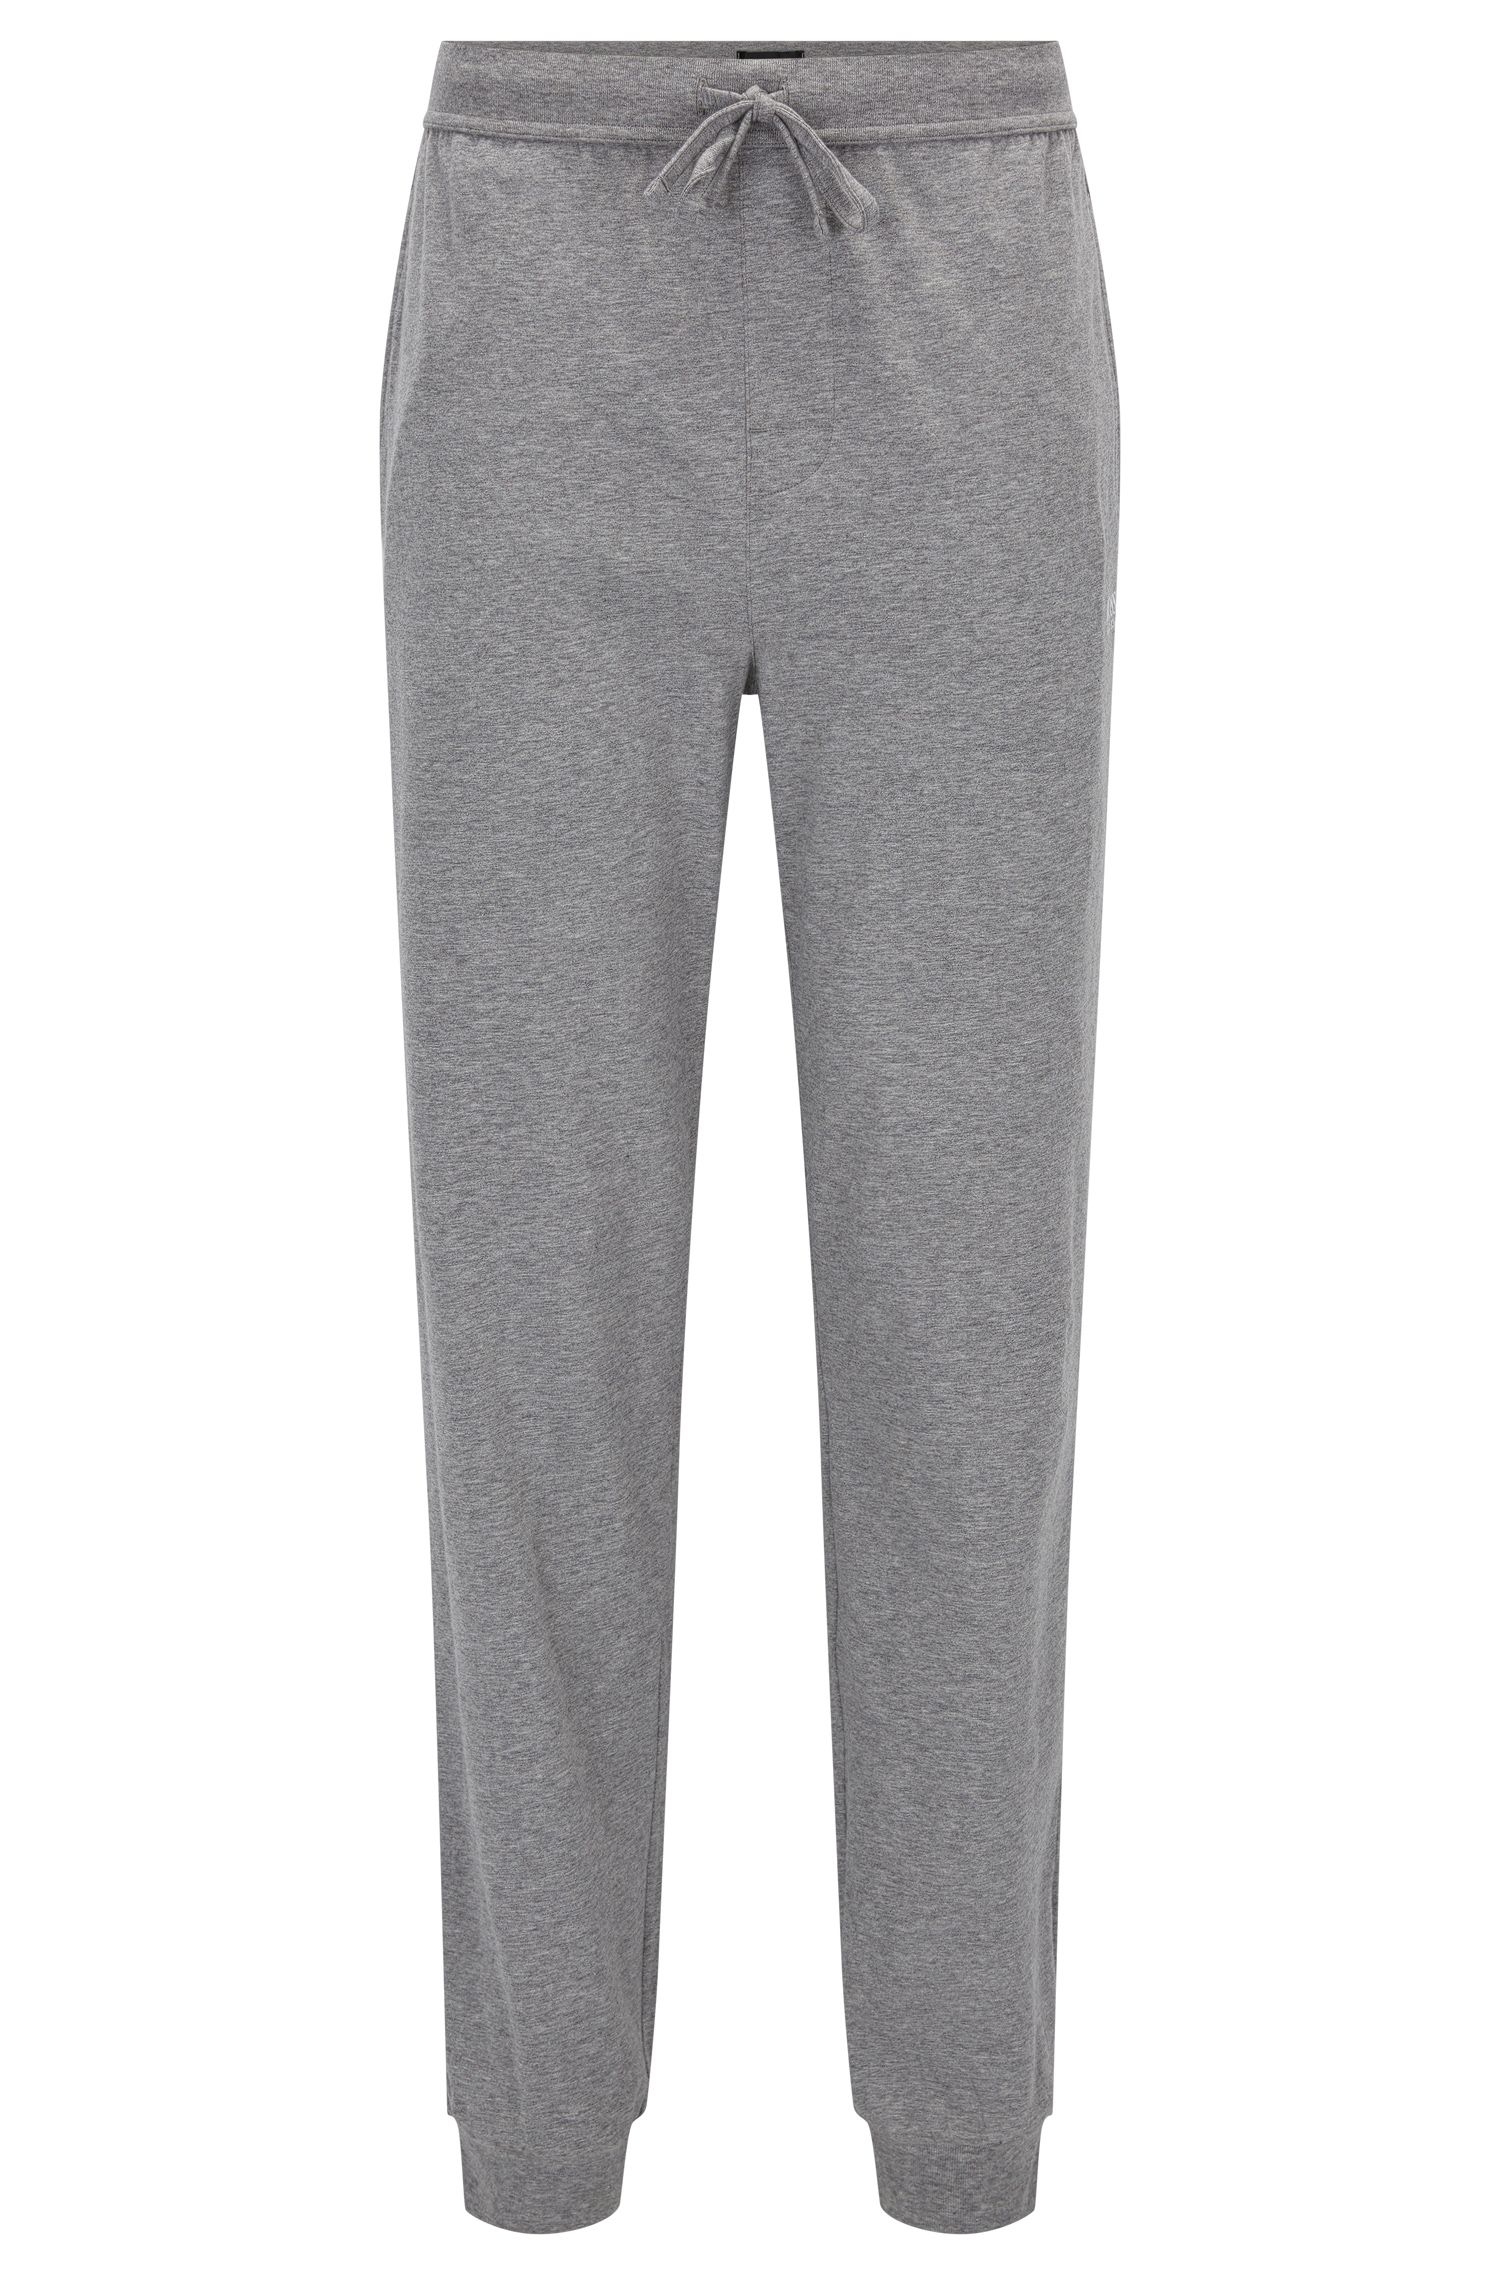 'Long Pant CW Cuffs' | Cuffed Heathered Stretch Cotton Sweatpants